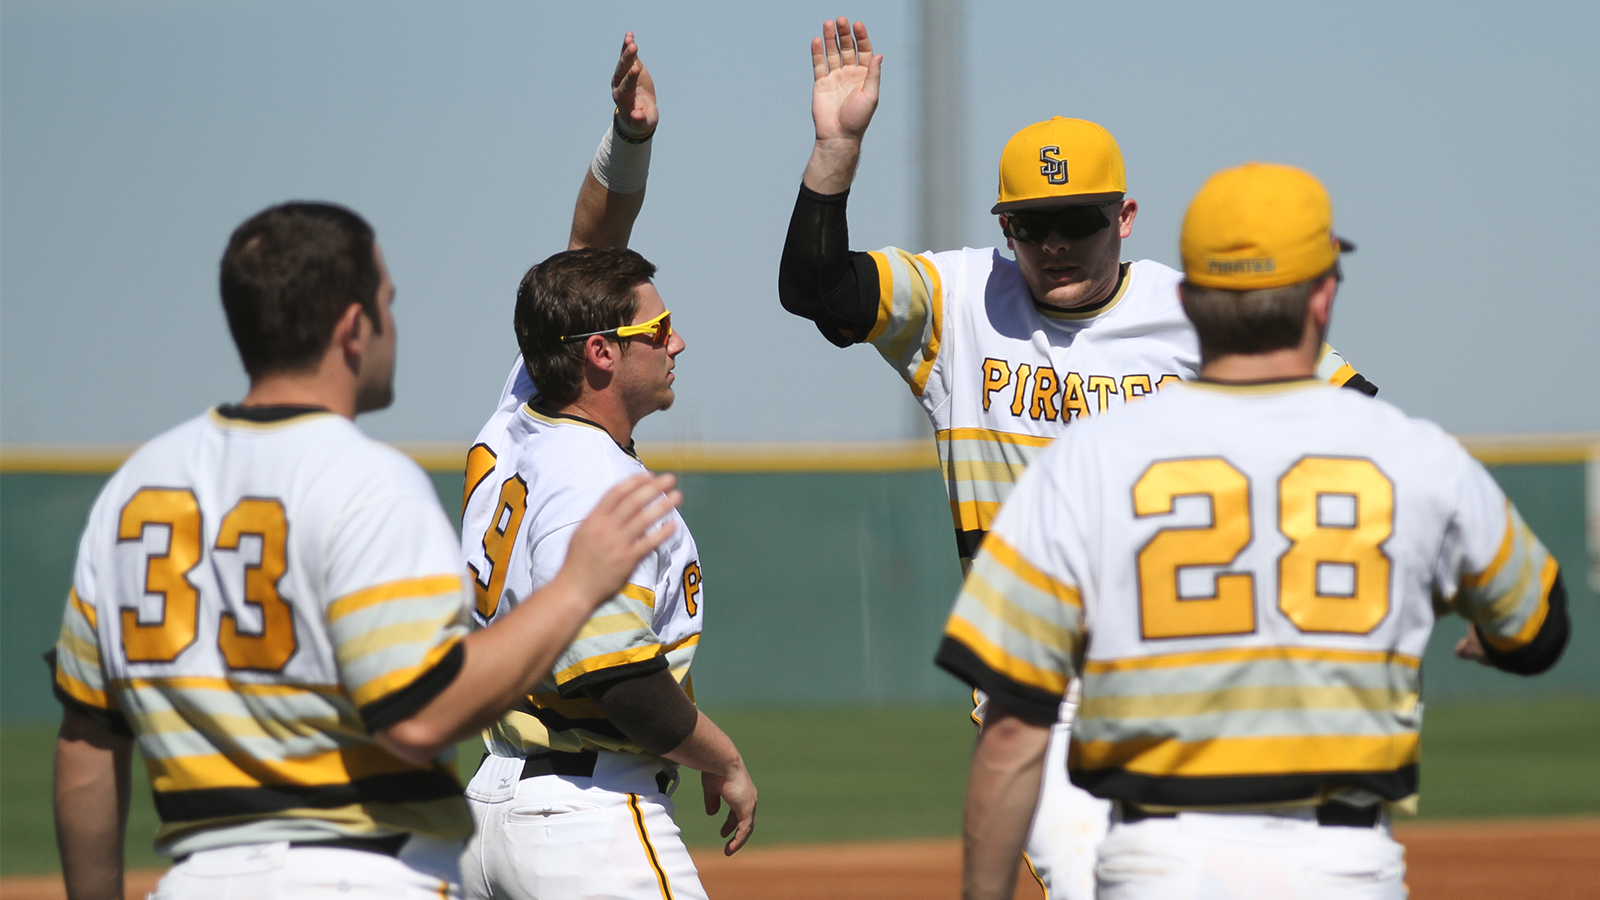 Baseball completes sweep of Blackburn with run-rule victories on Saturday